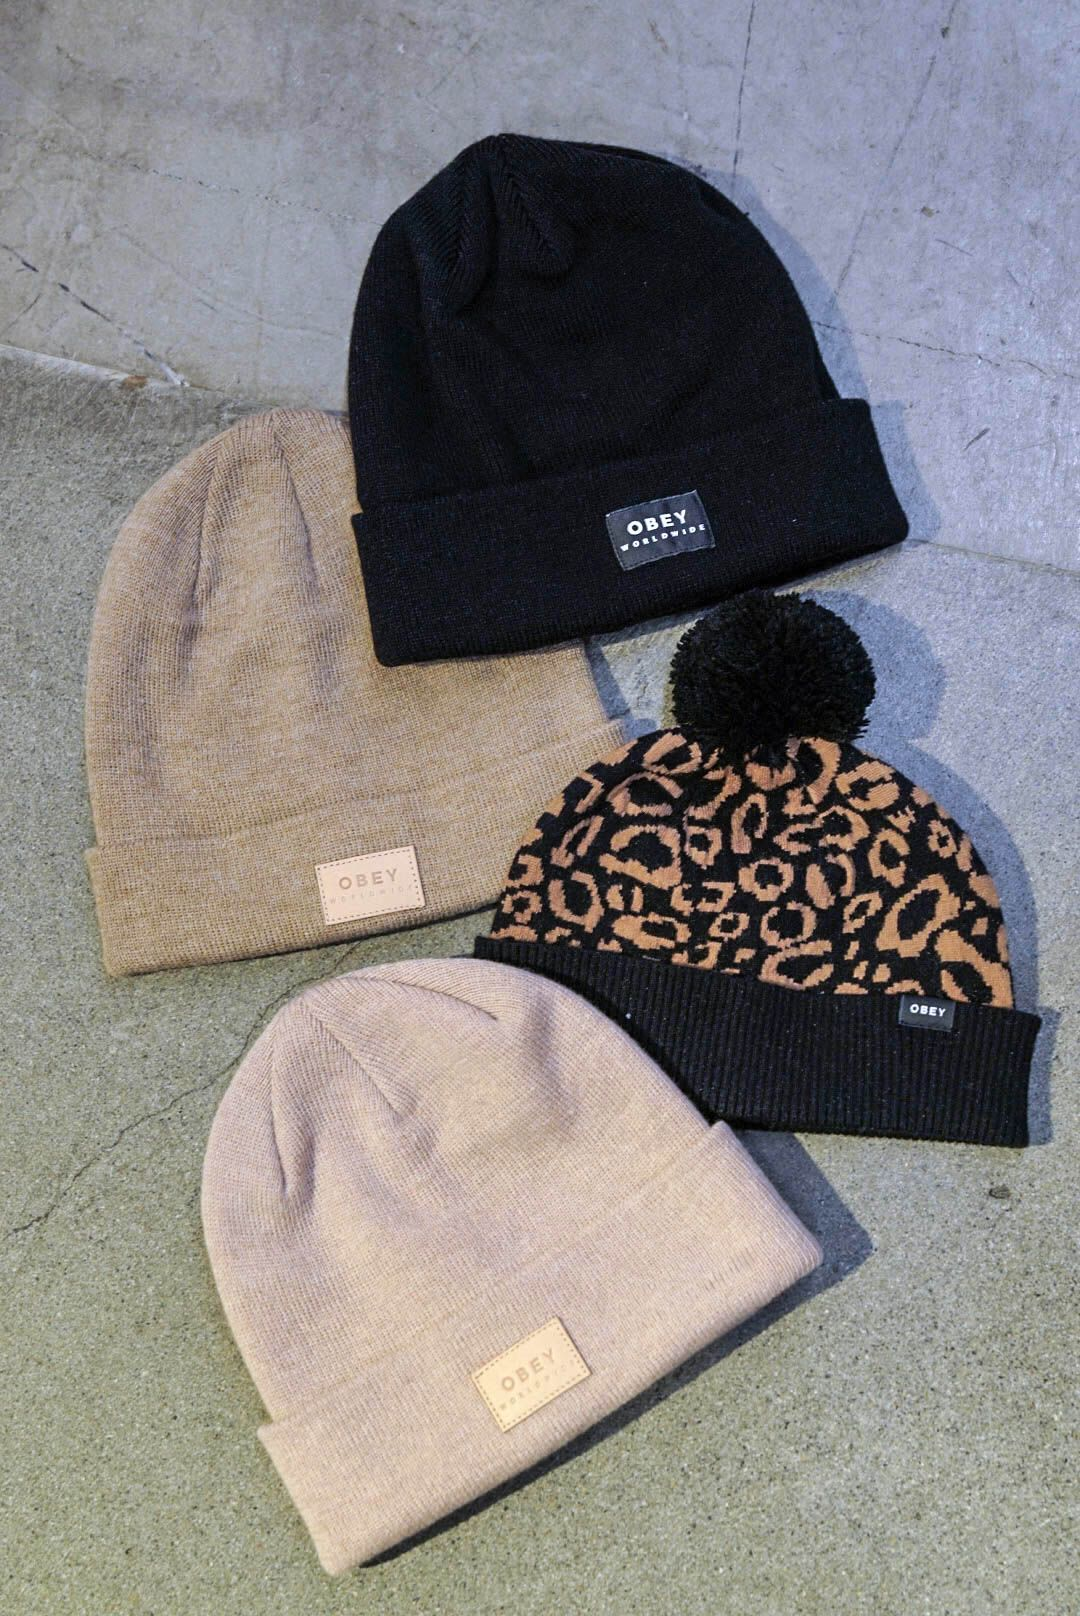 fe4539a9b90 Obey Beanies at Zumiez  purseszumiez